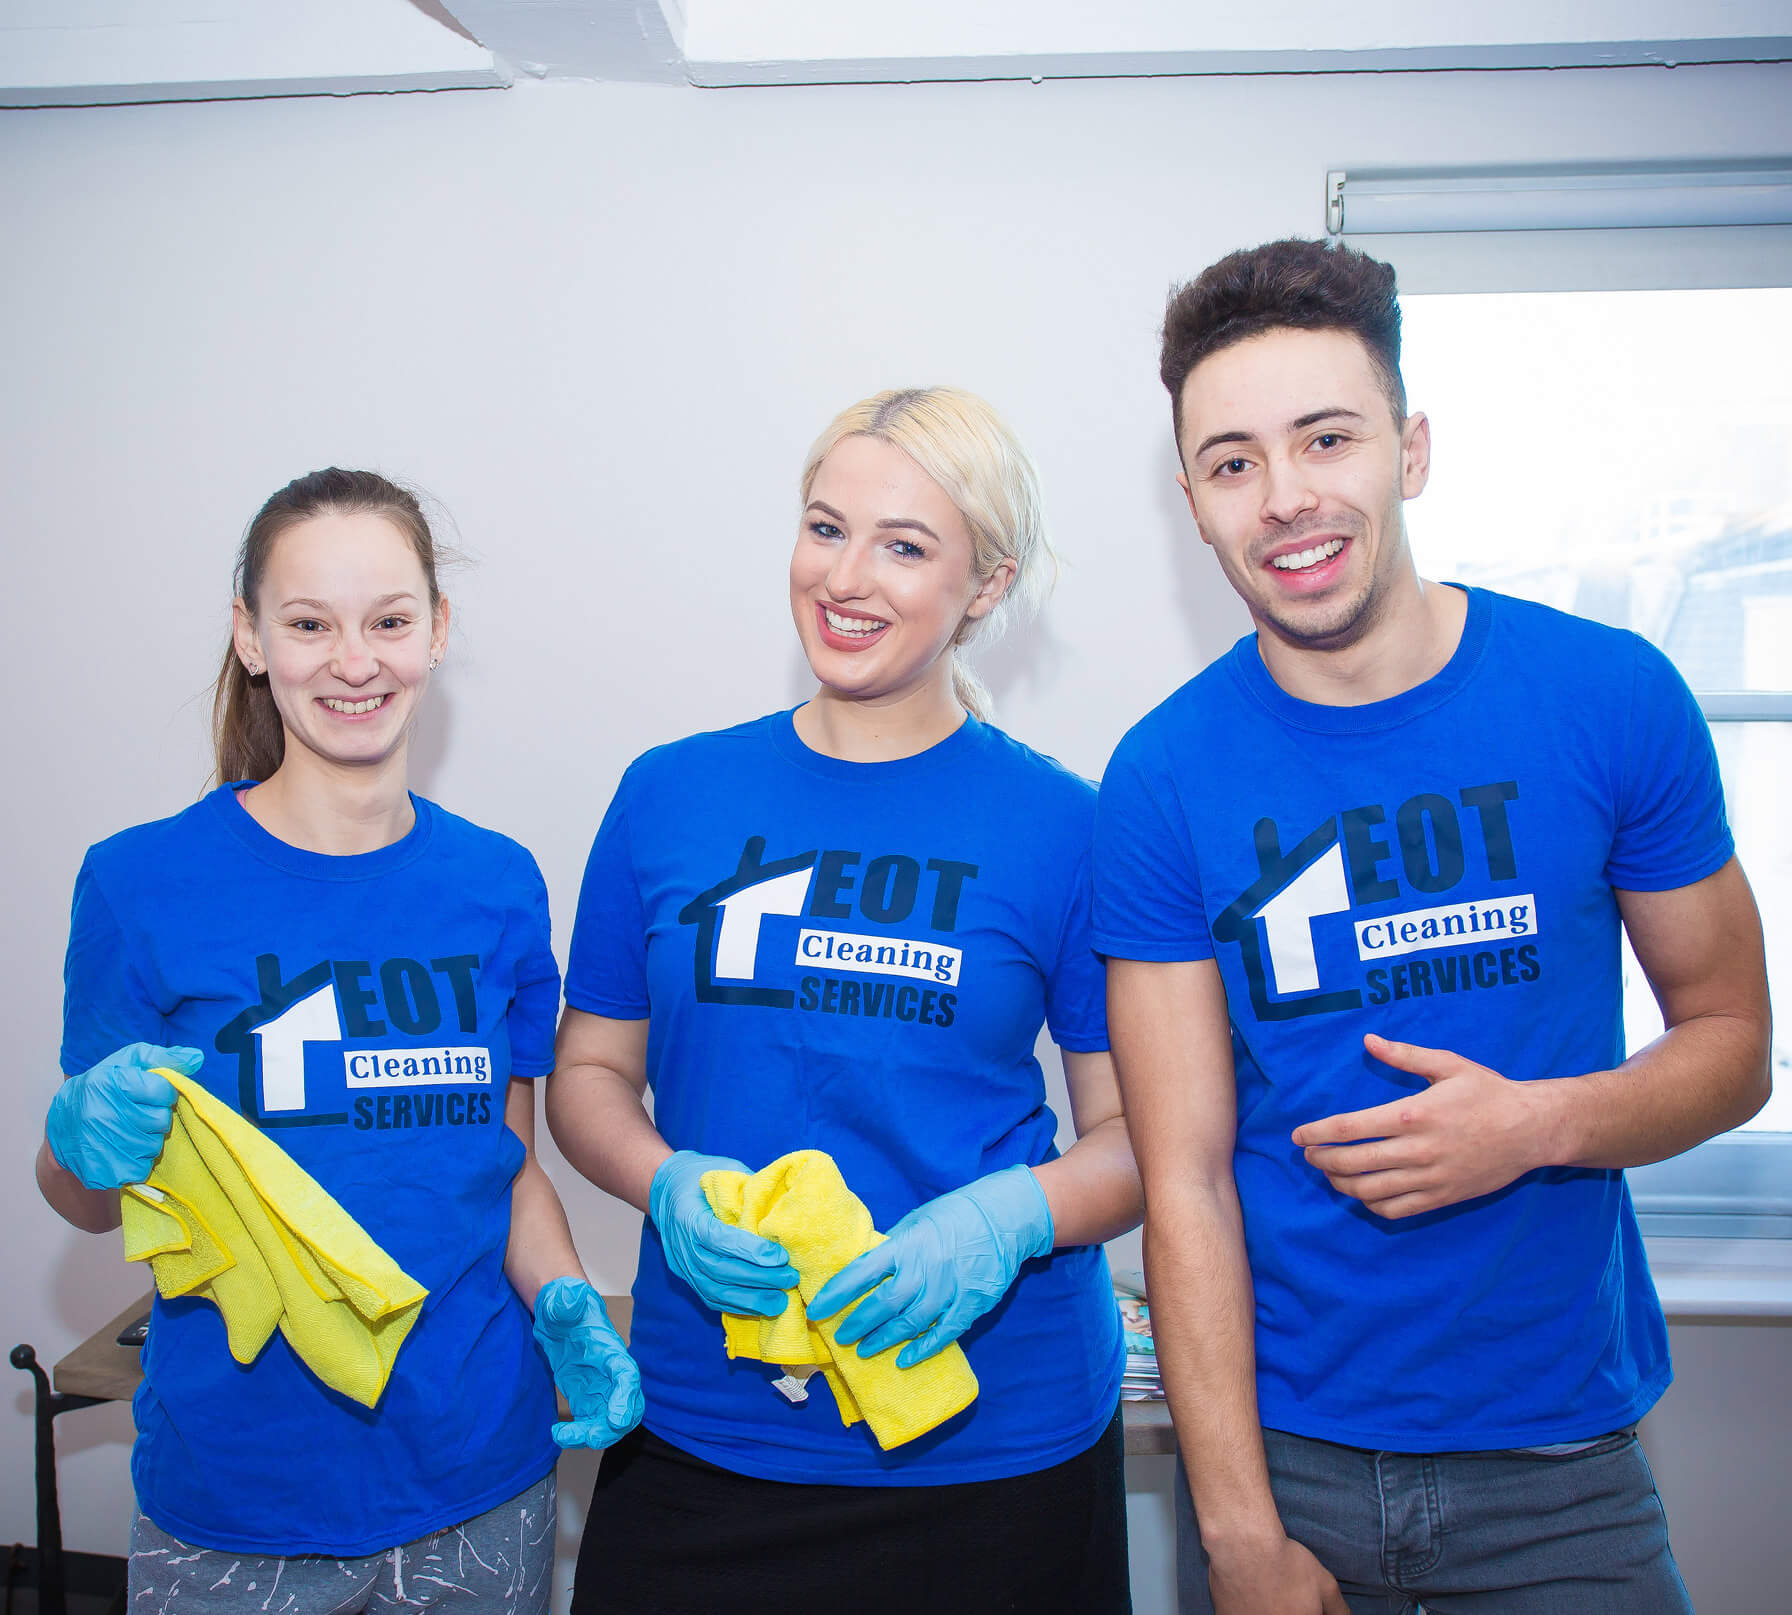 Cleaning Services in fulham